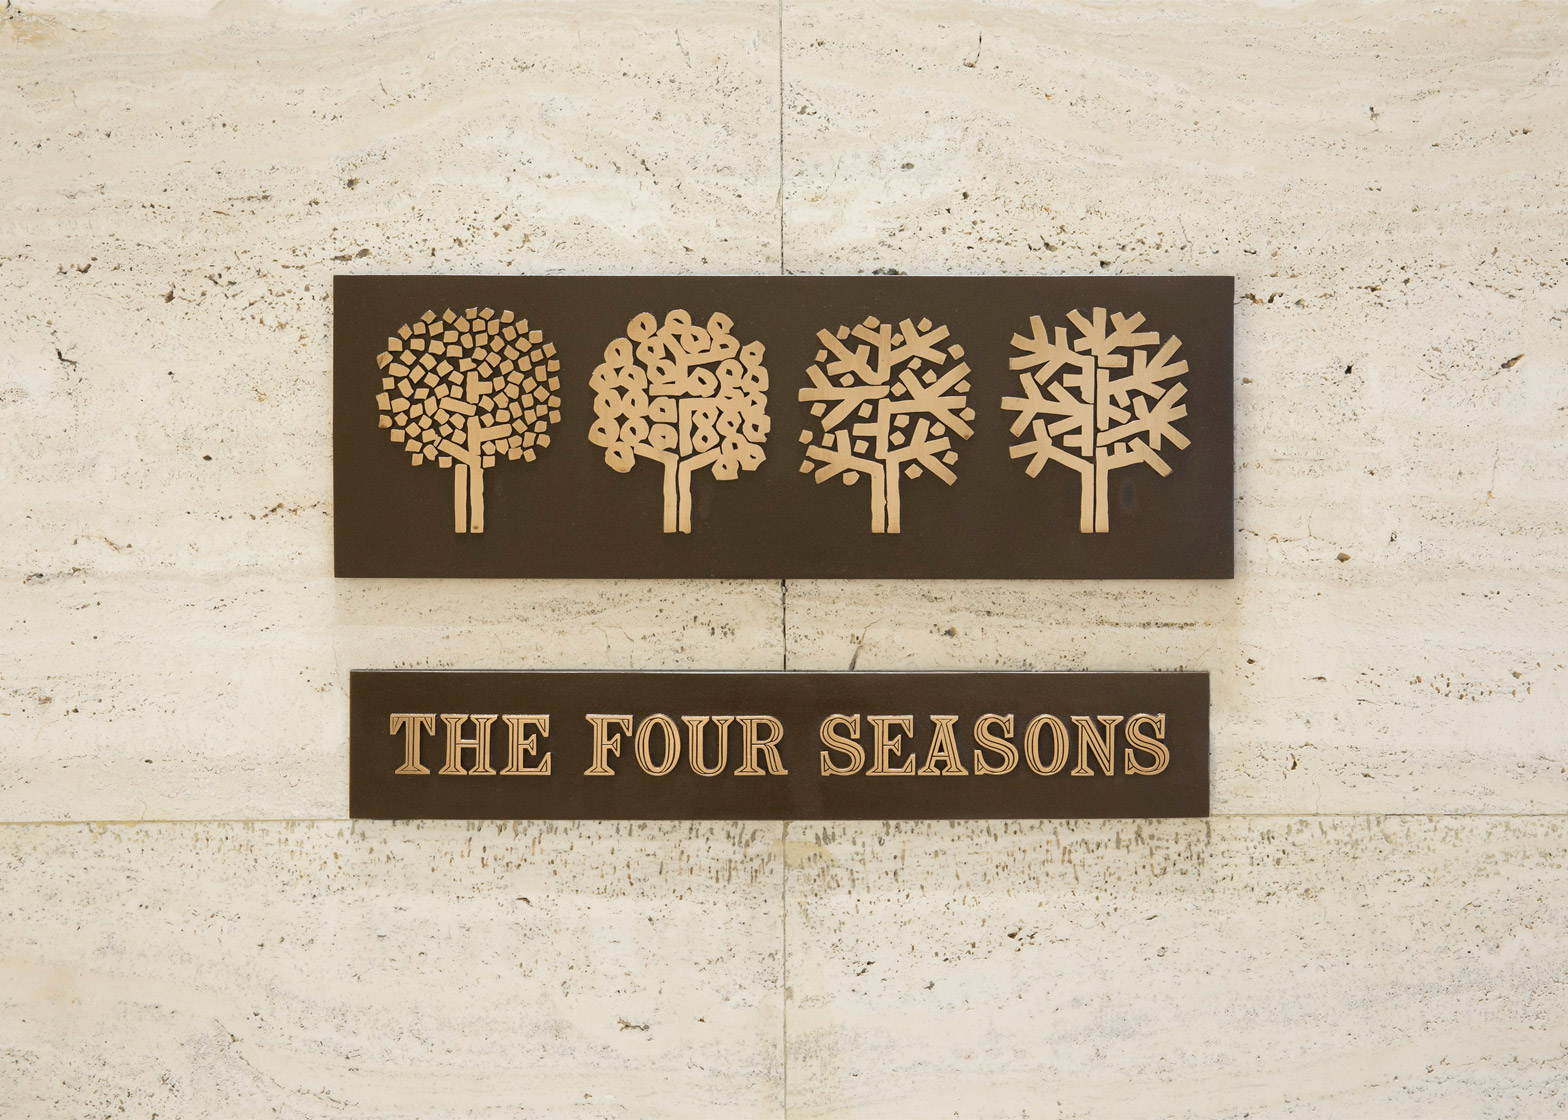 Items from the Four Seasons Restaurant Auction